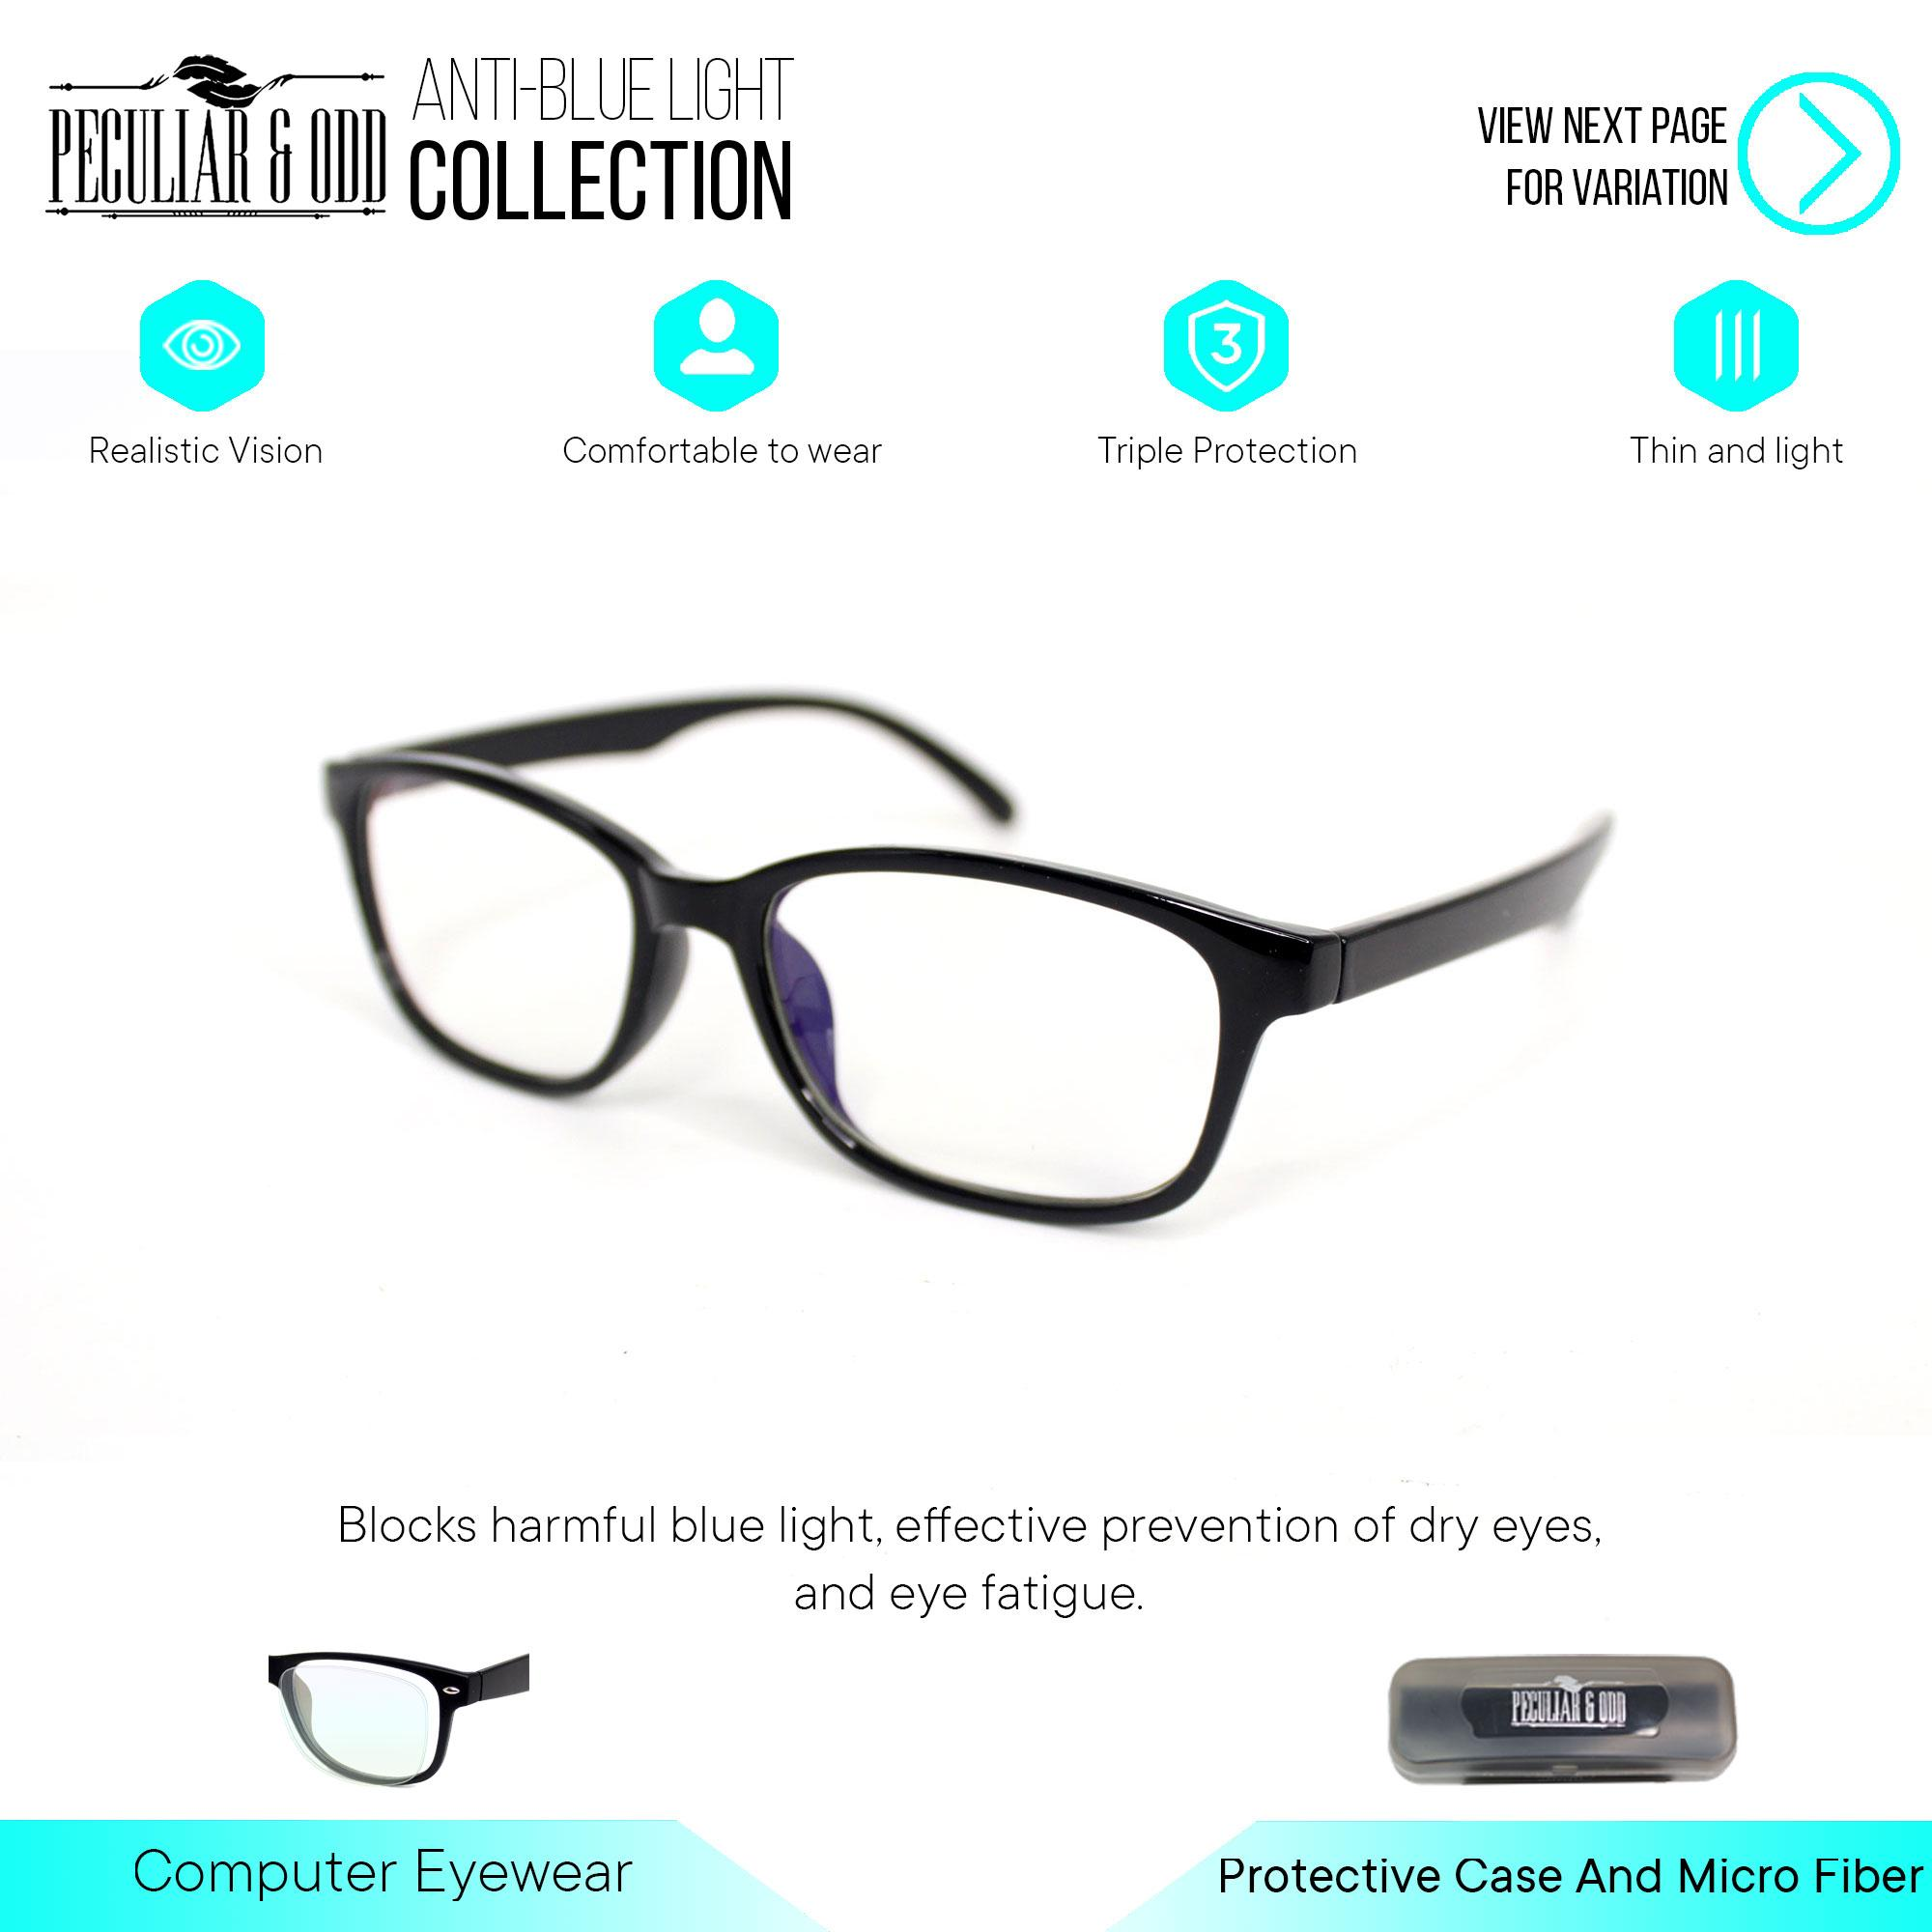 a9f945436917 Peculiar Square 3028 CoalBlackClear Anti Radiation Computer Eyeglass  Optical Replaceable Eyewear Unisex new